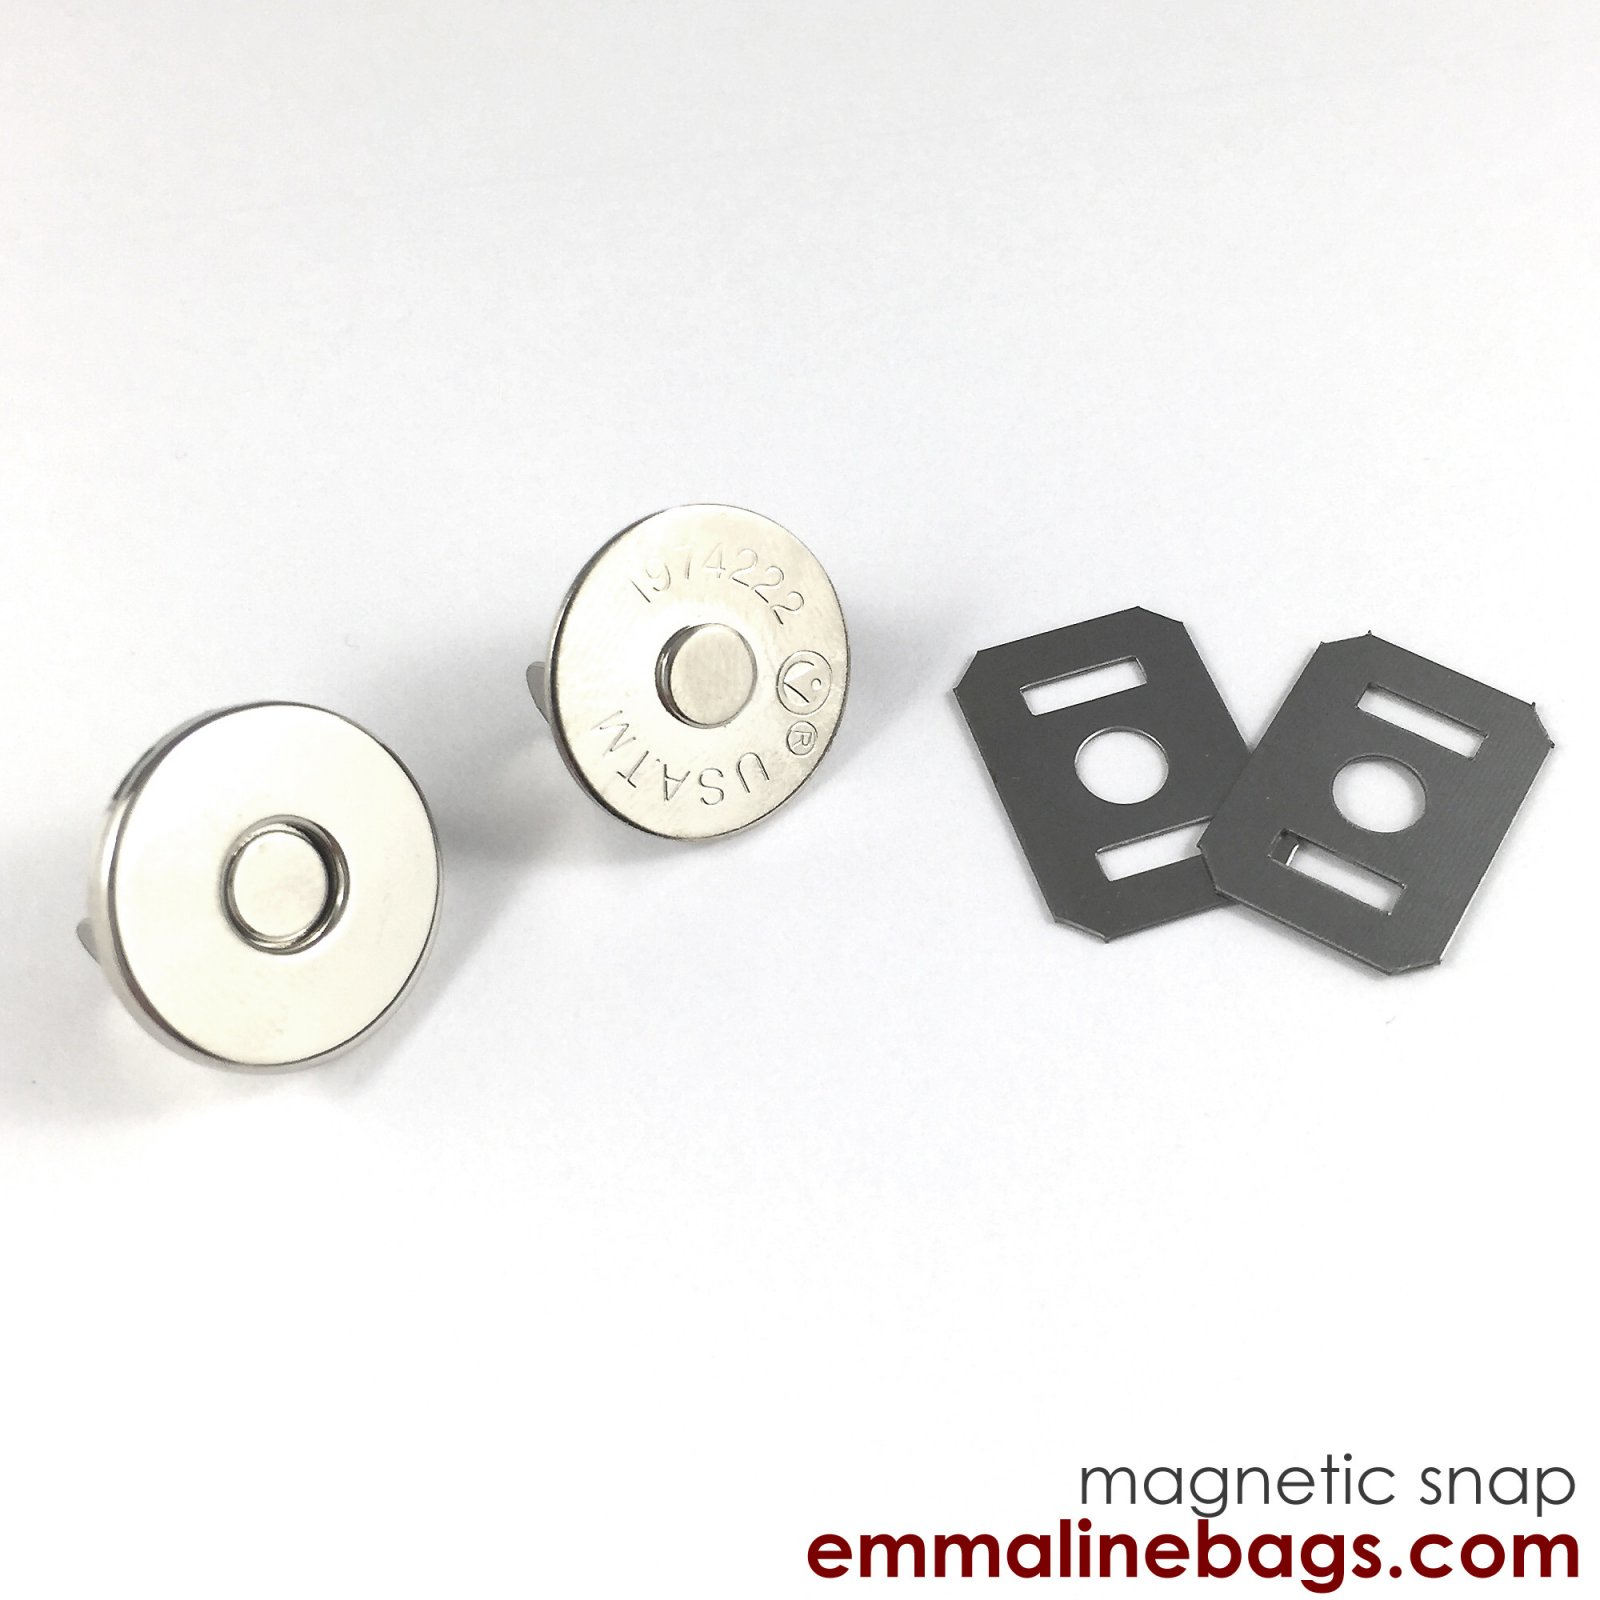 Emmaline - Magnetic Snap Closures: 3/4 (18 mm) in Nickel Finish (2 Pack)